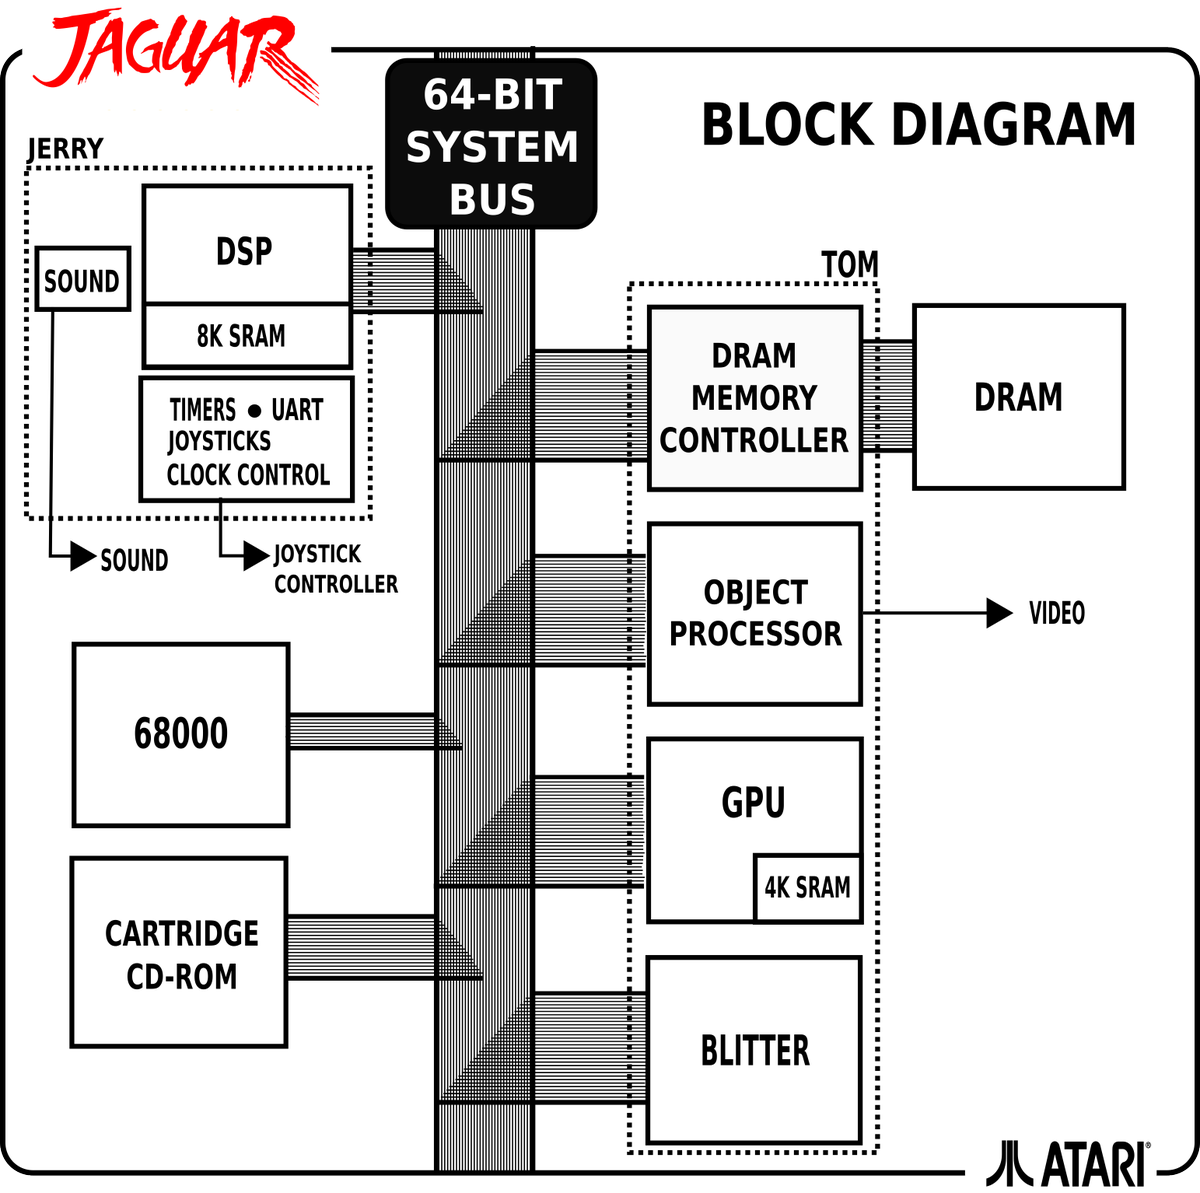 Fabien sanglard on twitter working on atari jaguar block diagram working on atari jaguar block diagram tonight inkscape rules what a pity to know the console did not do well while hardware engineers obviously poured ccuart Image collections